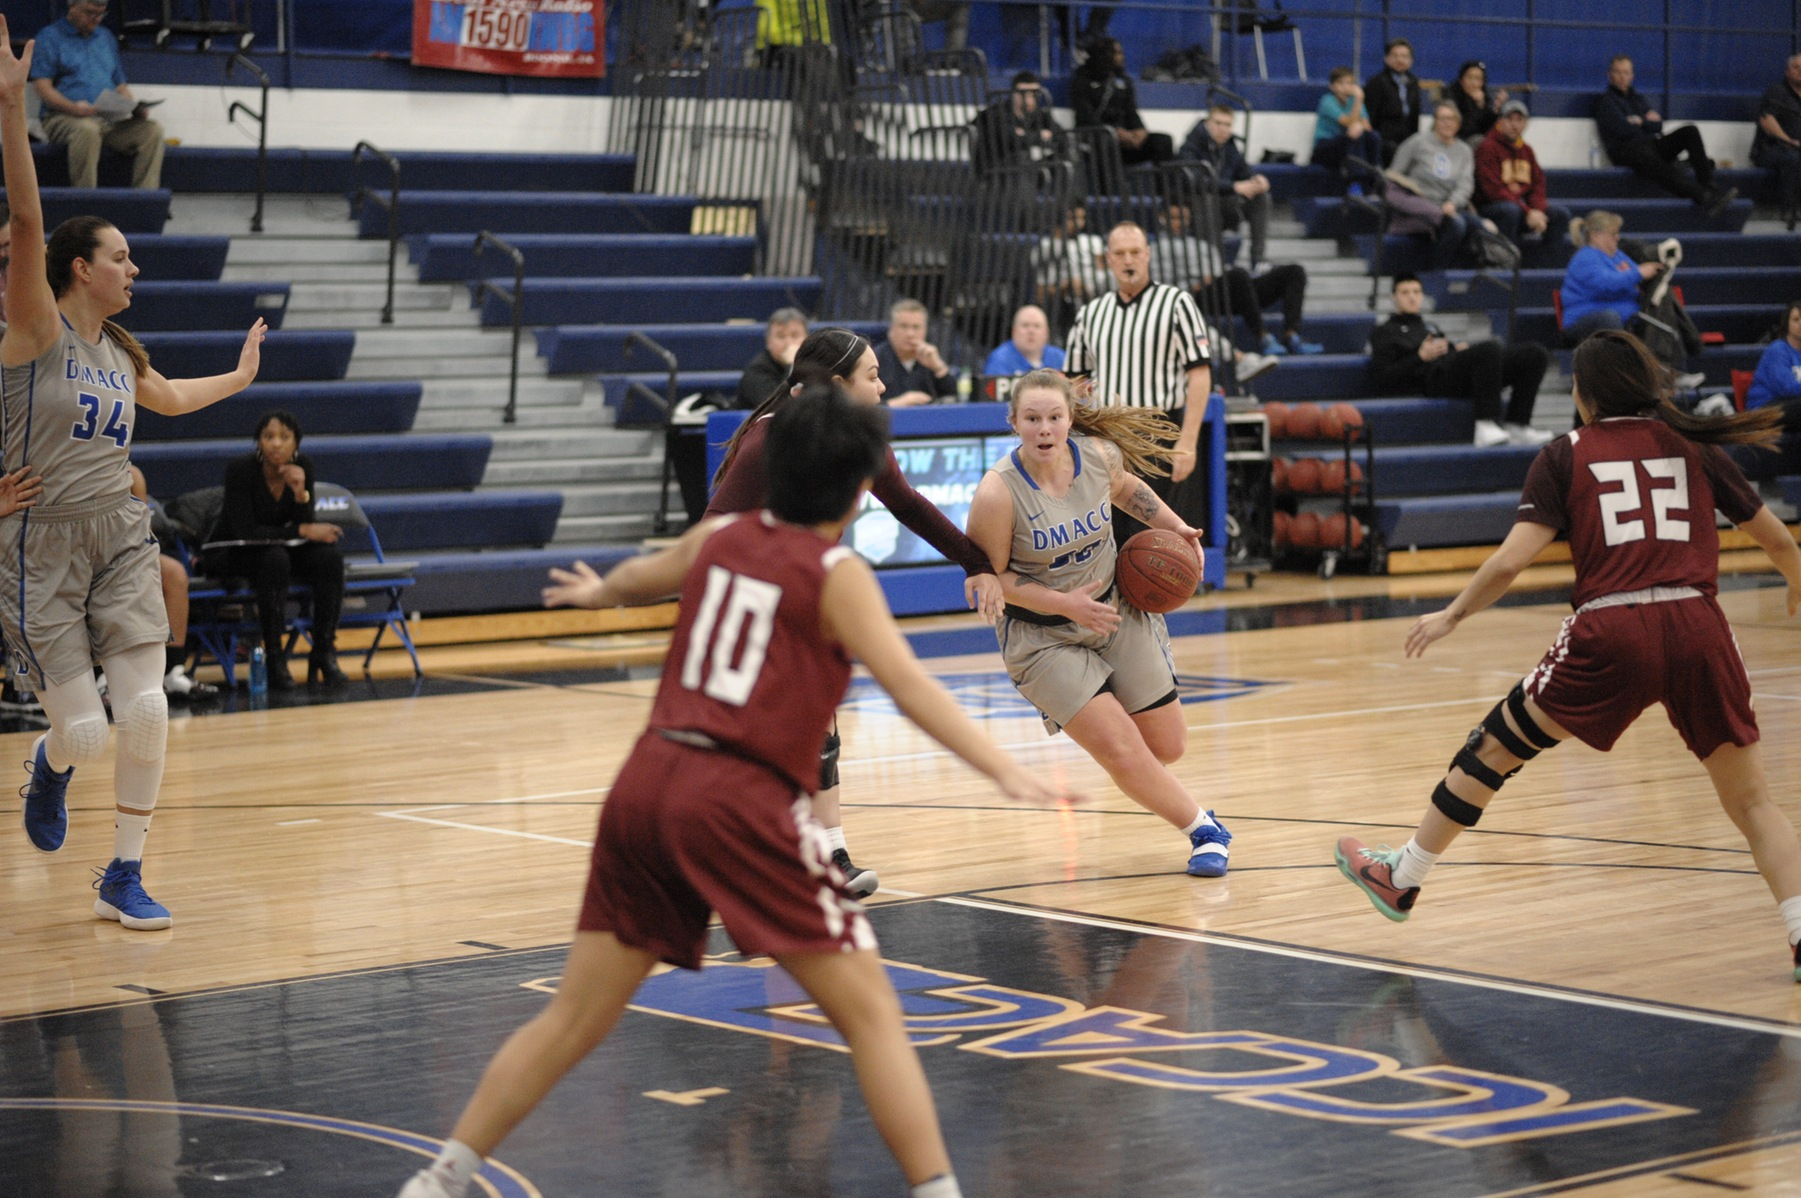 Robinson leads DMACC women's basketball team past LPT, 96-72